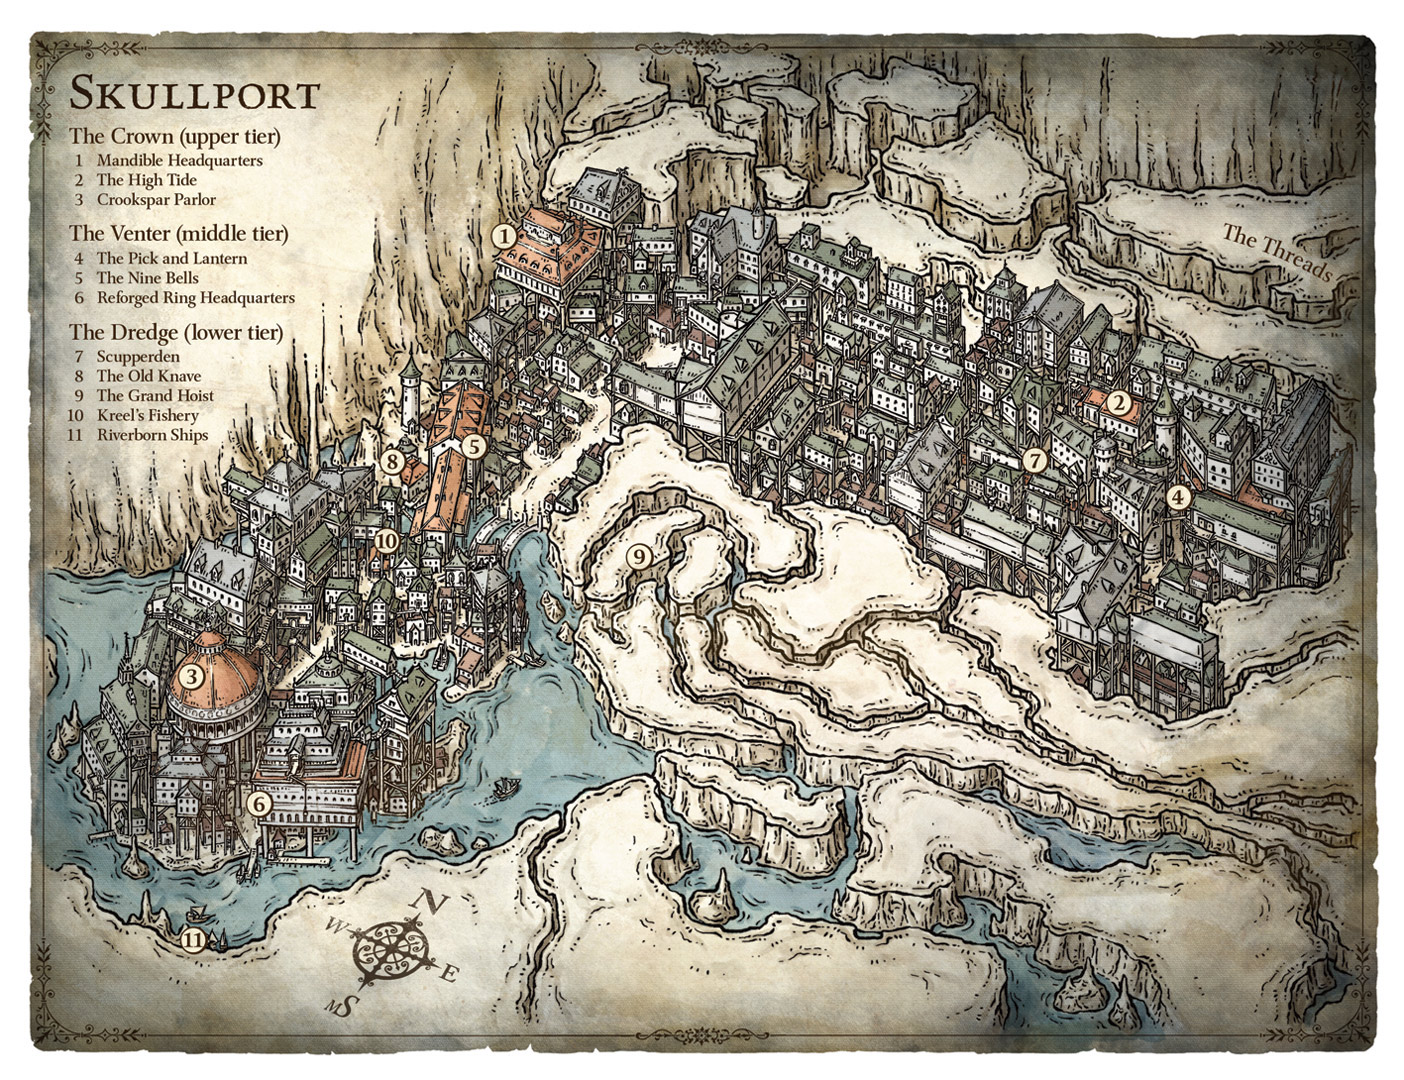 Map of Skullport